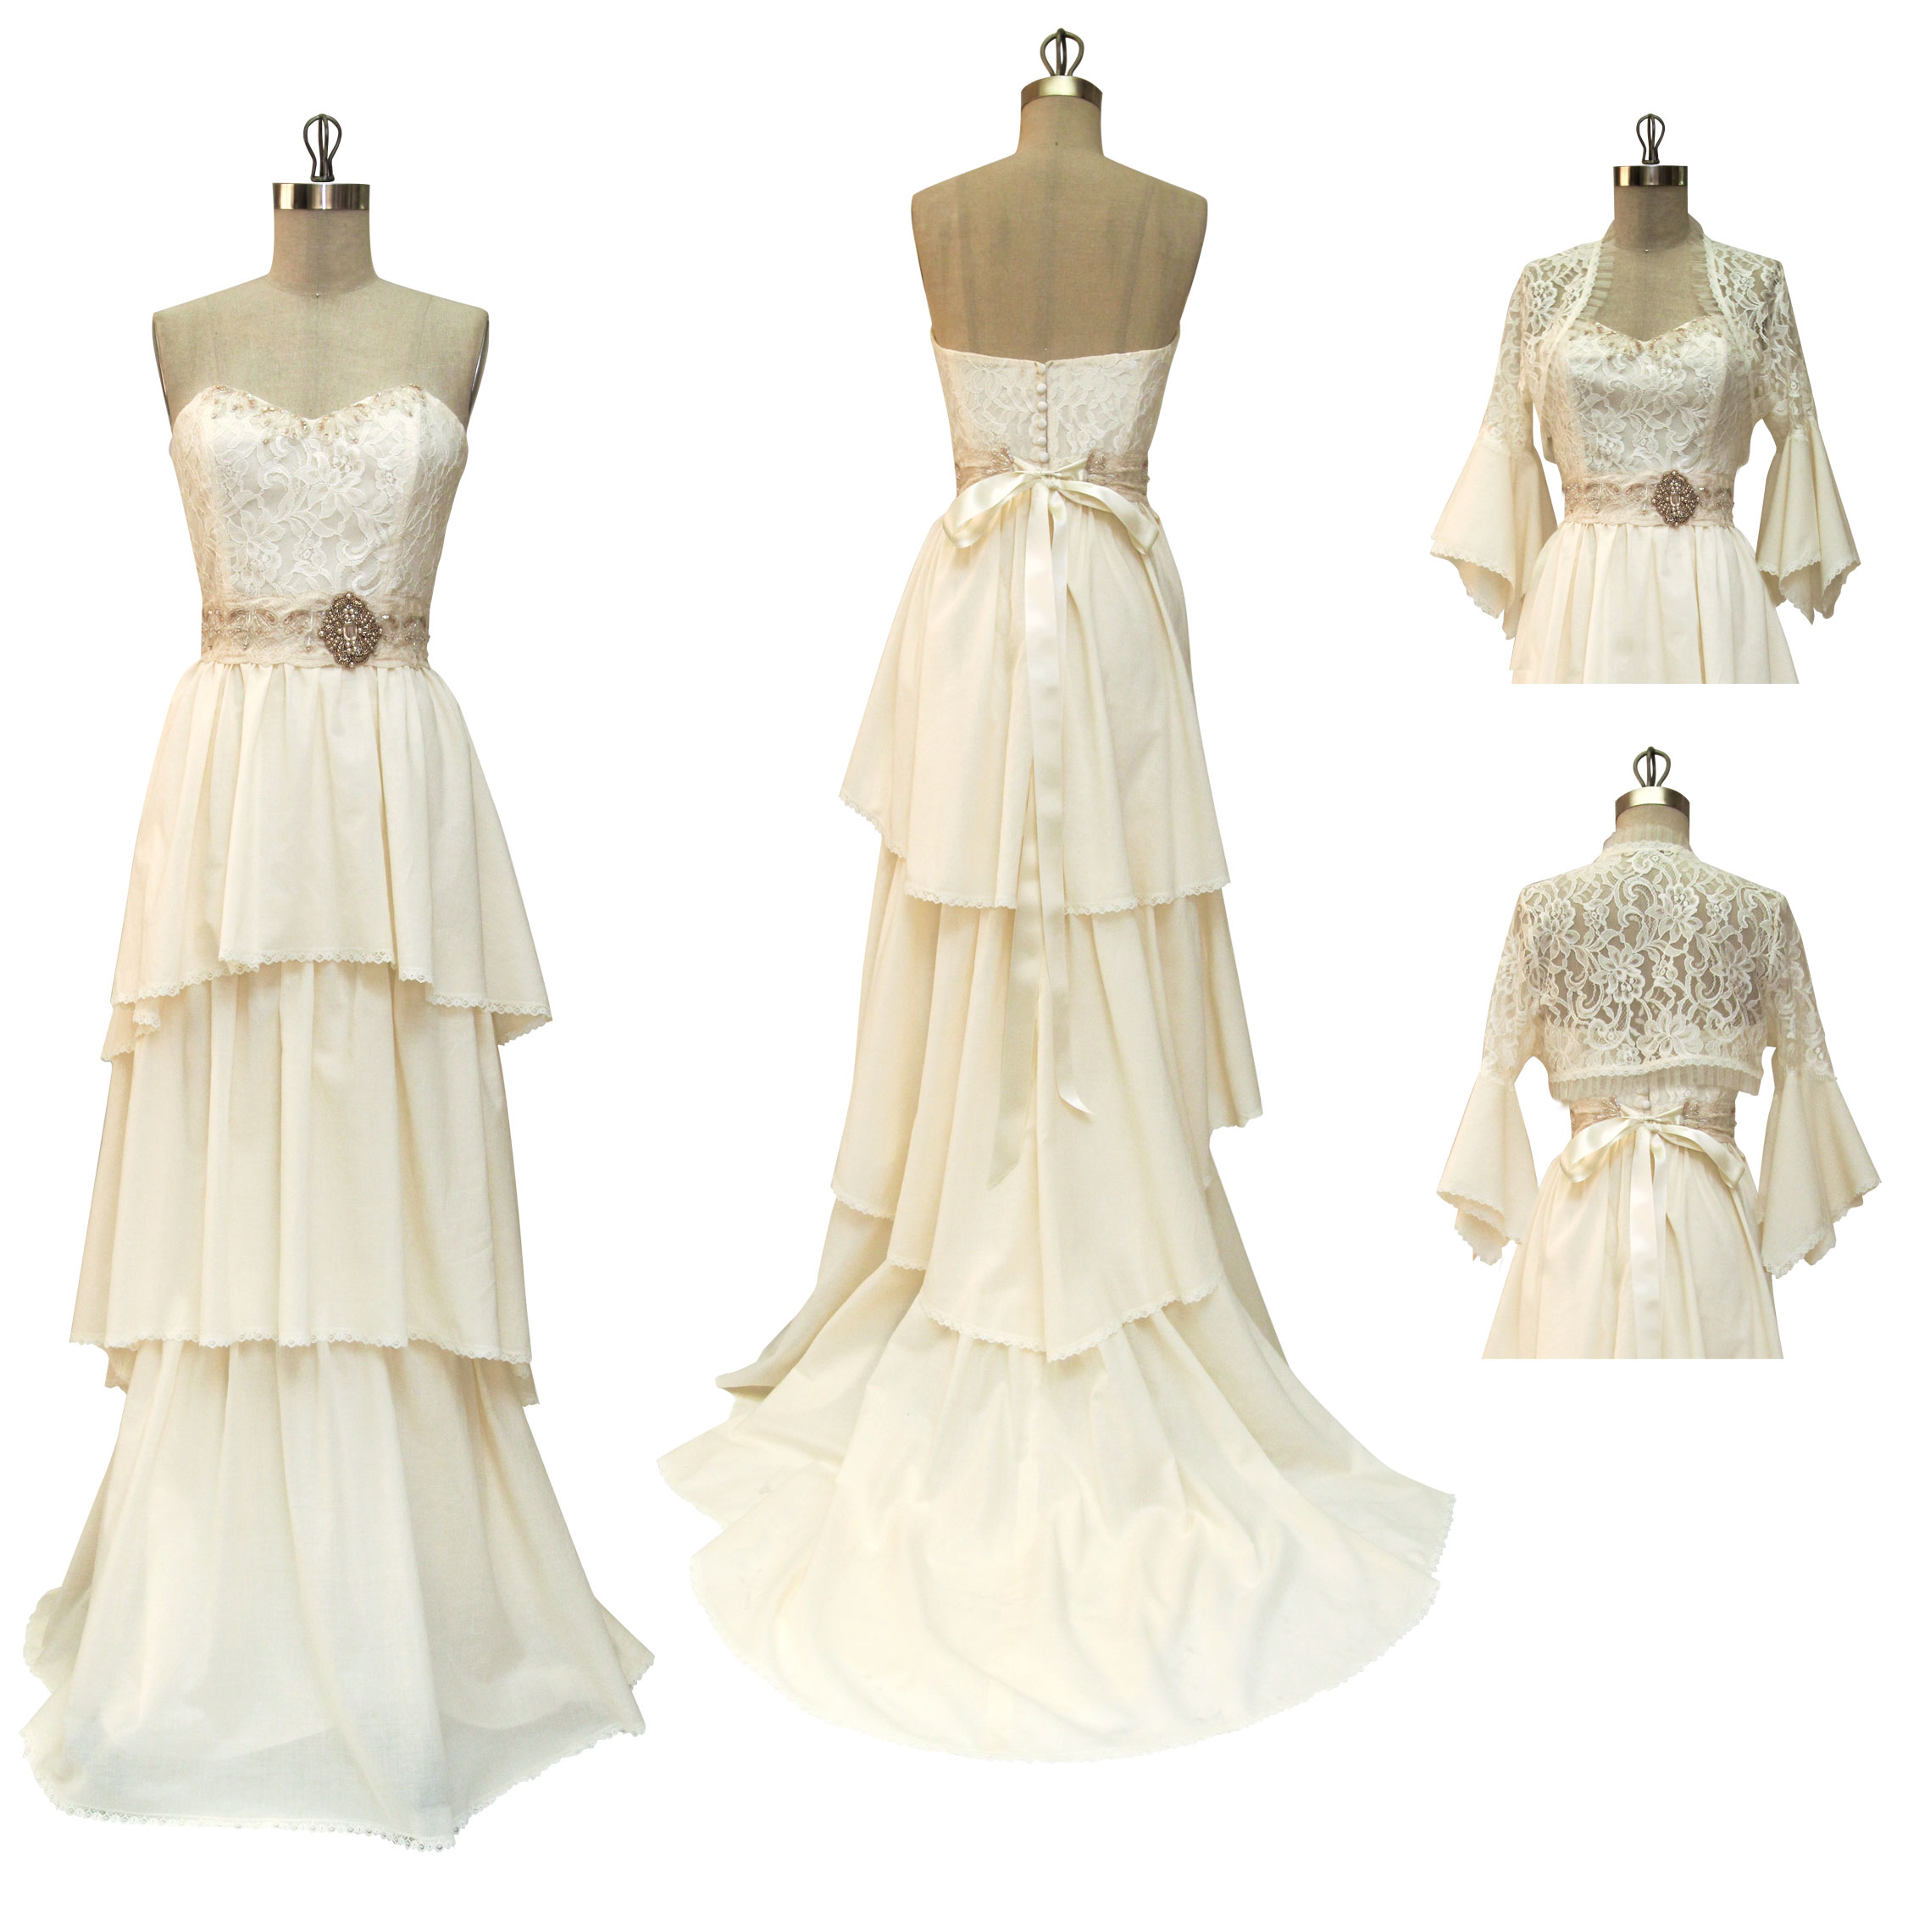 Antique ivory wedding dresses for Ivory vintage lace wedding dress